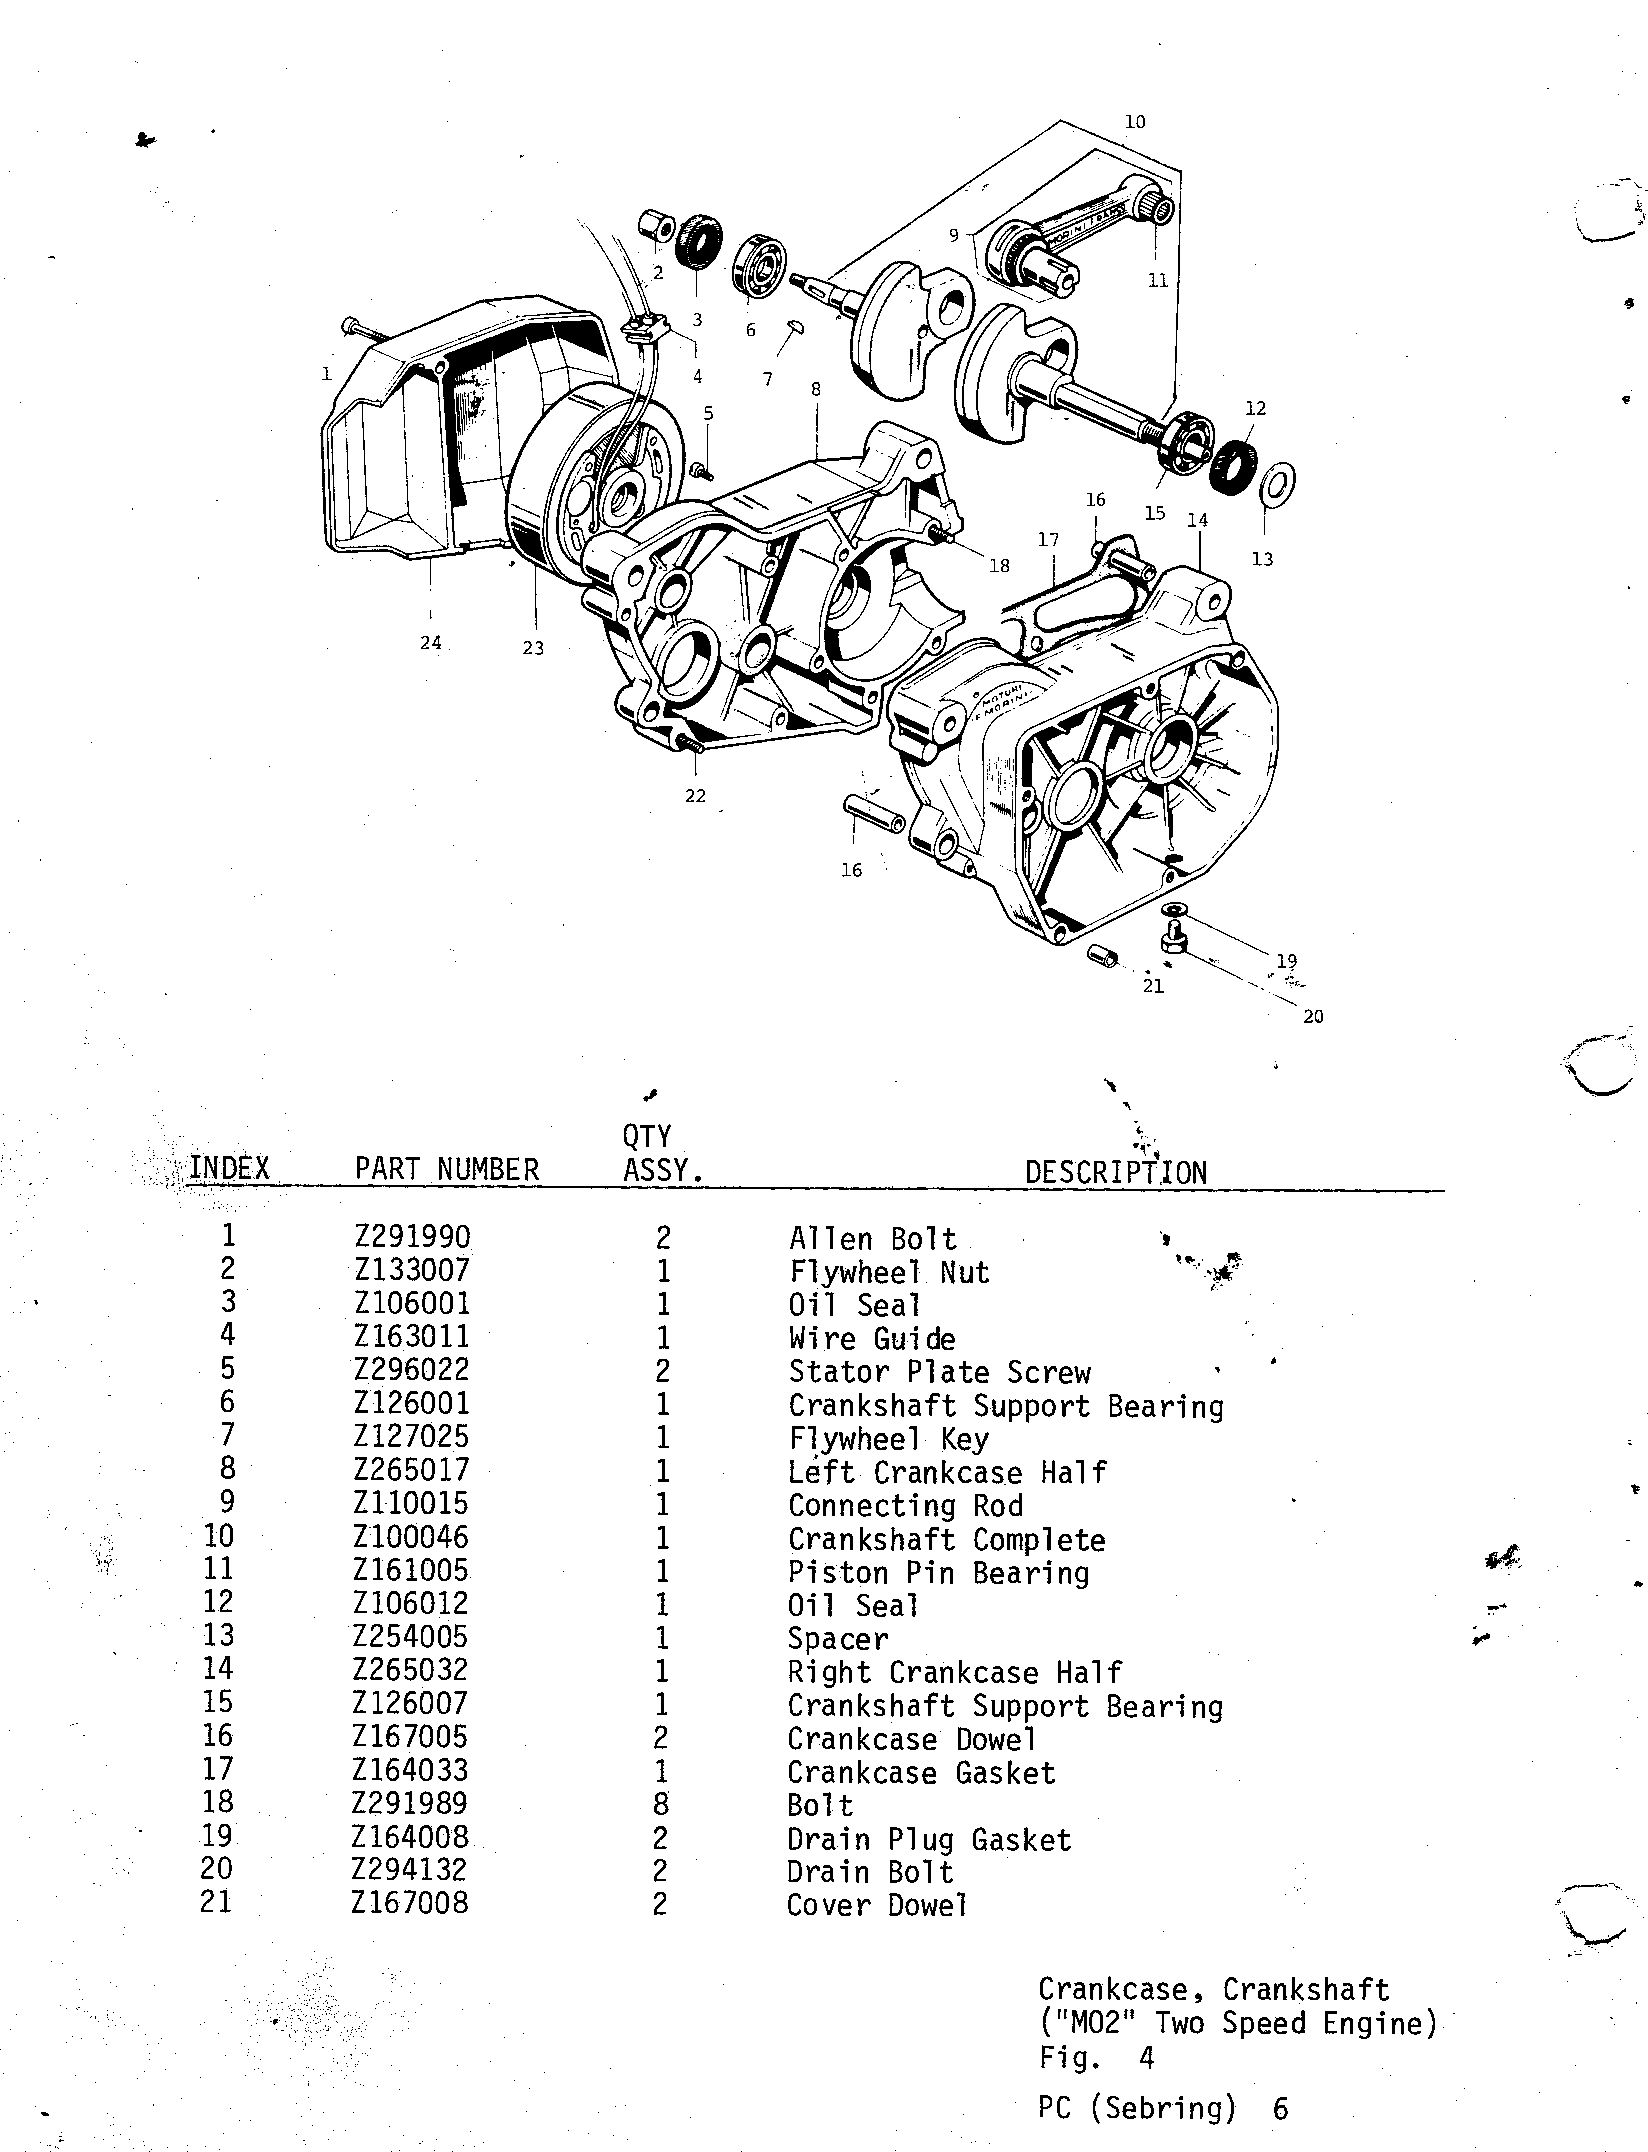 06-CRANKCASE, CRANKSHAFT, M02 TWO SPEED ENGINE